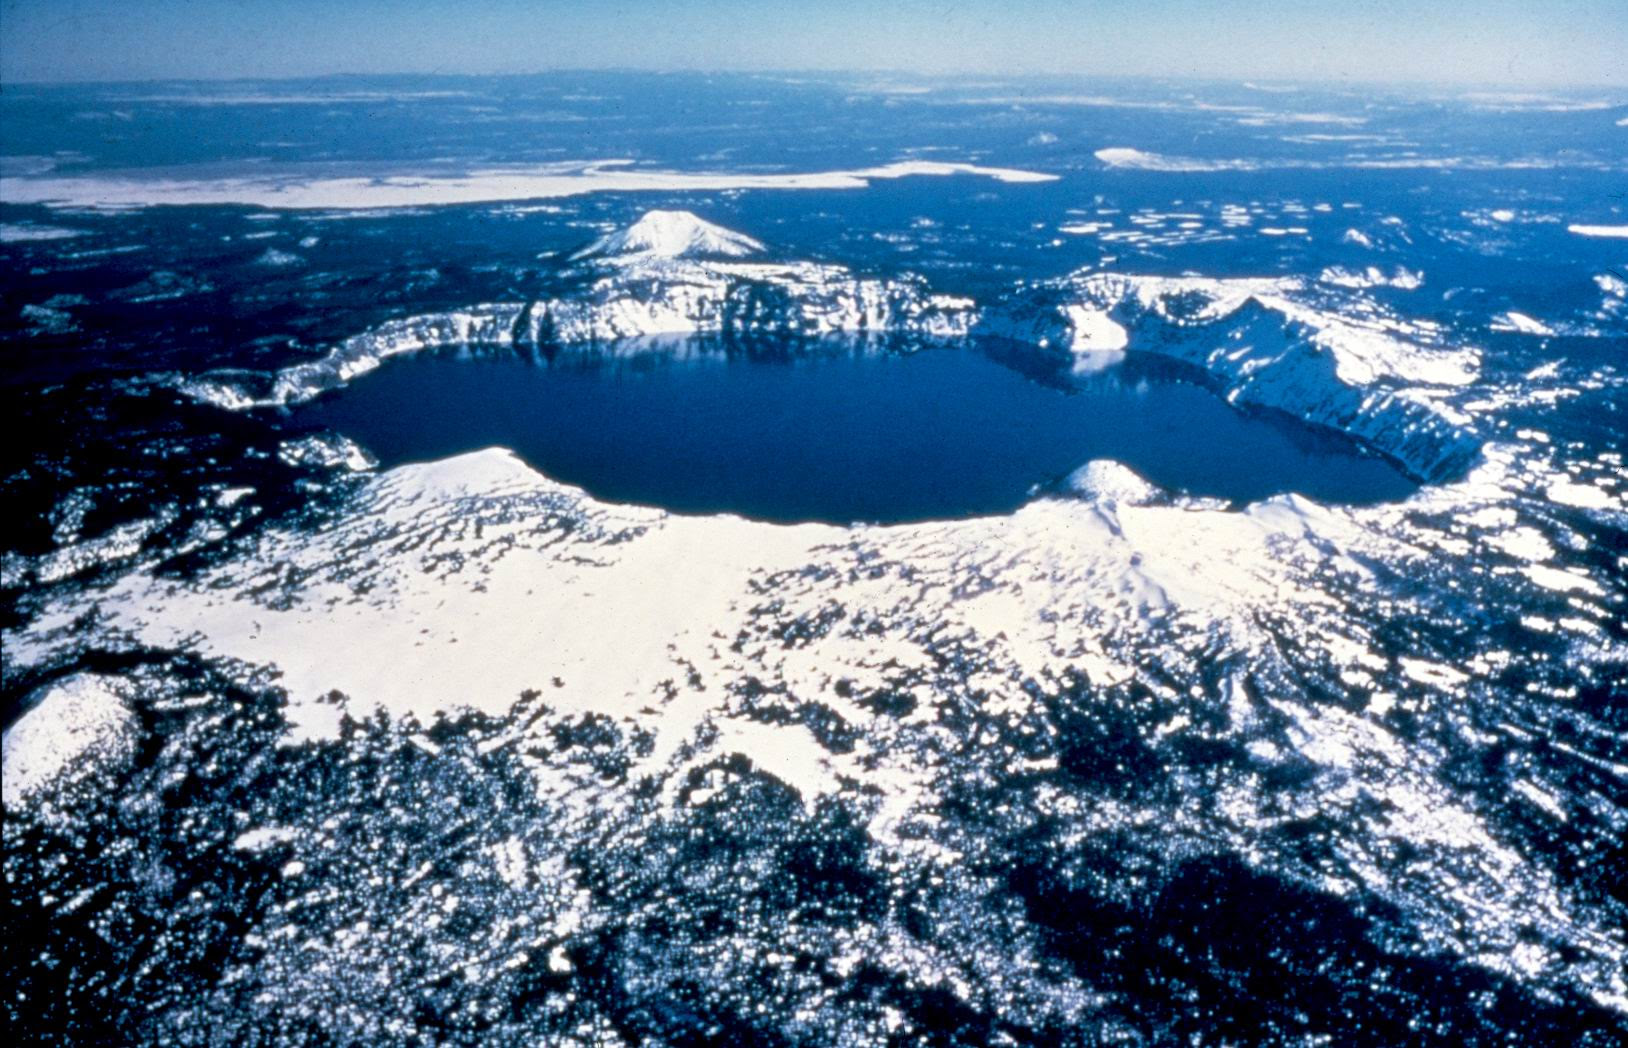 Aerial View of Crater Lake in Winter